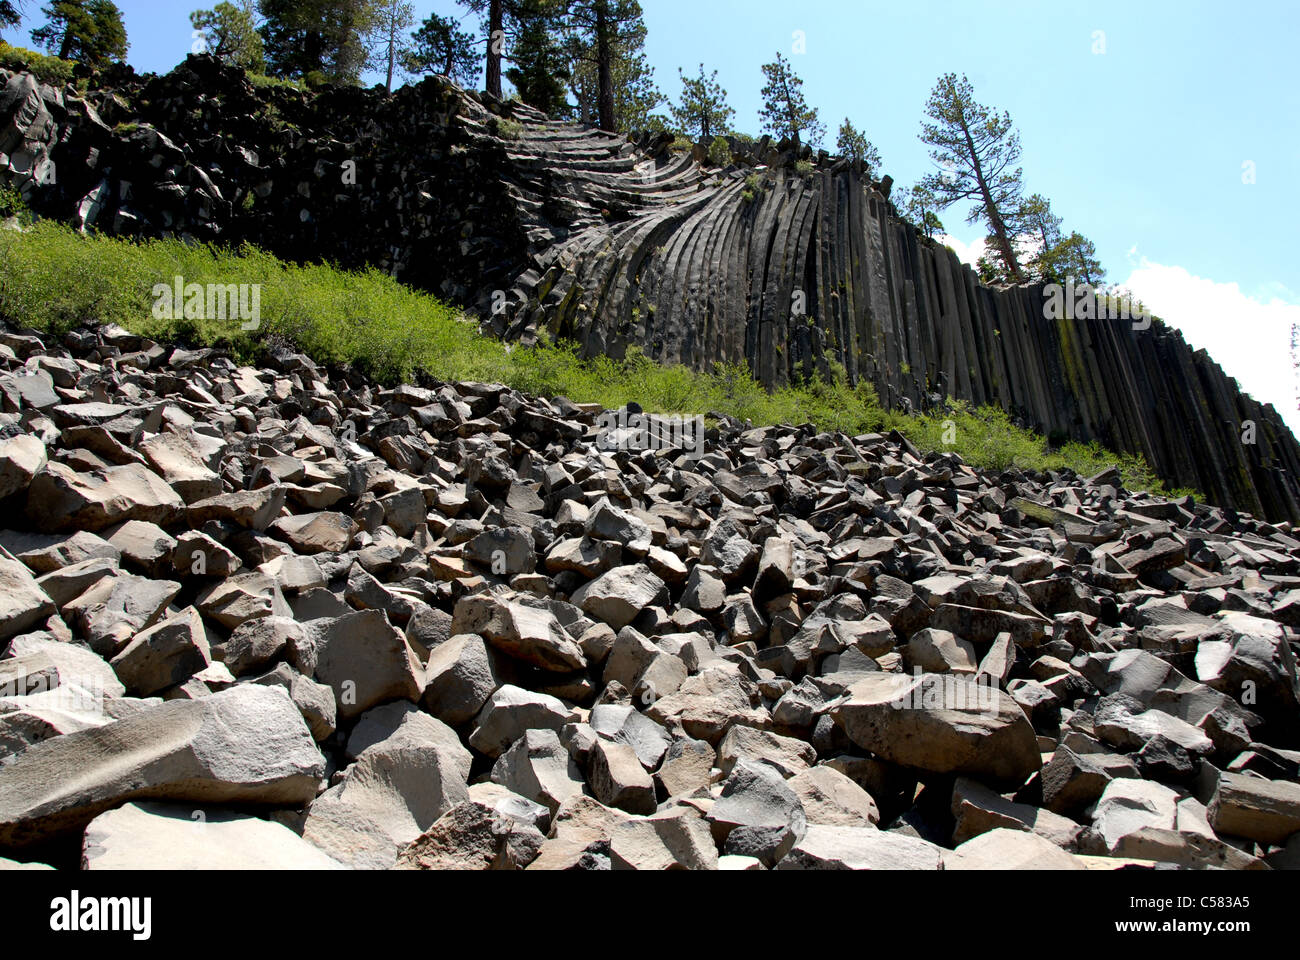 Devils Postpile, National monument, Sierra Nevada, USA, America, California, cliff, structures, stratification, - Stock Image